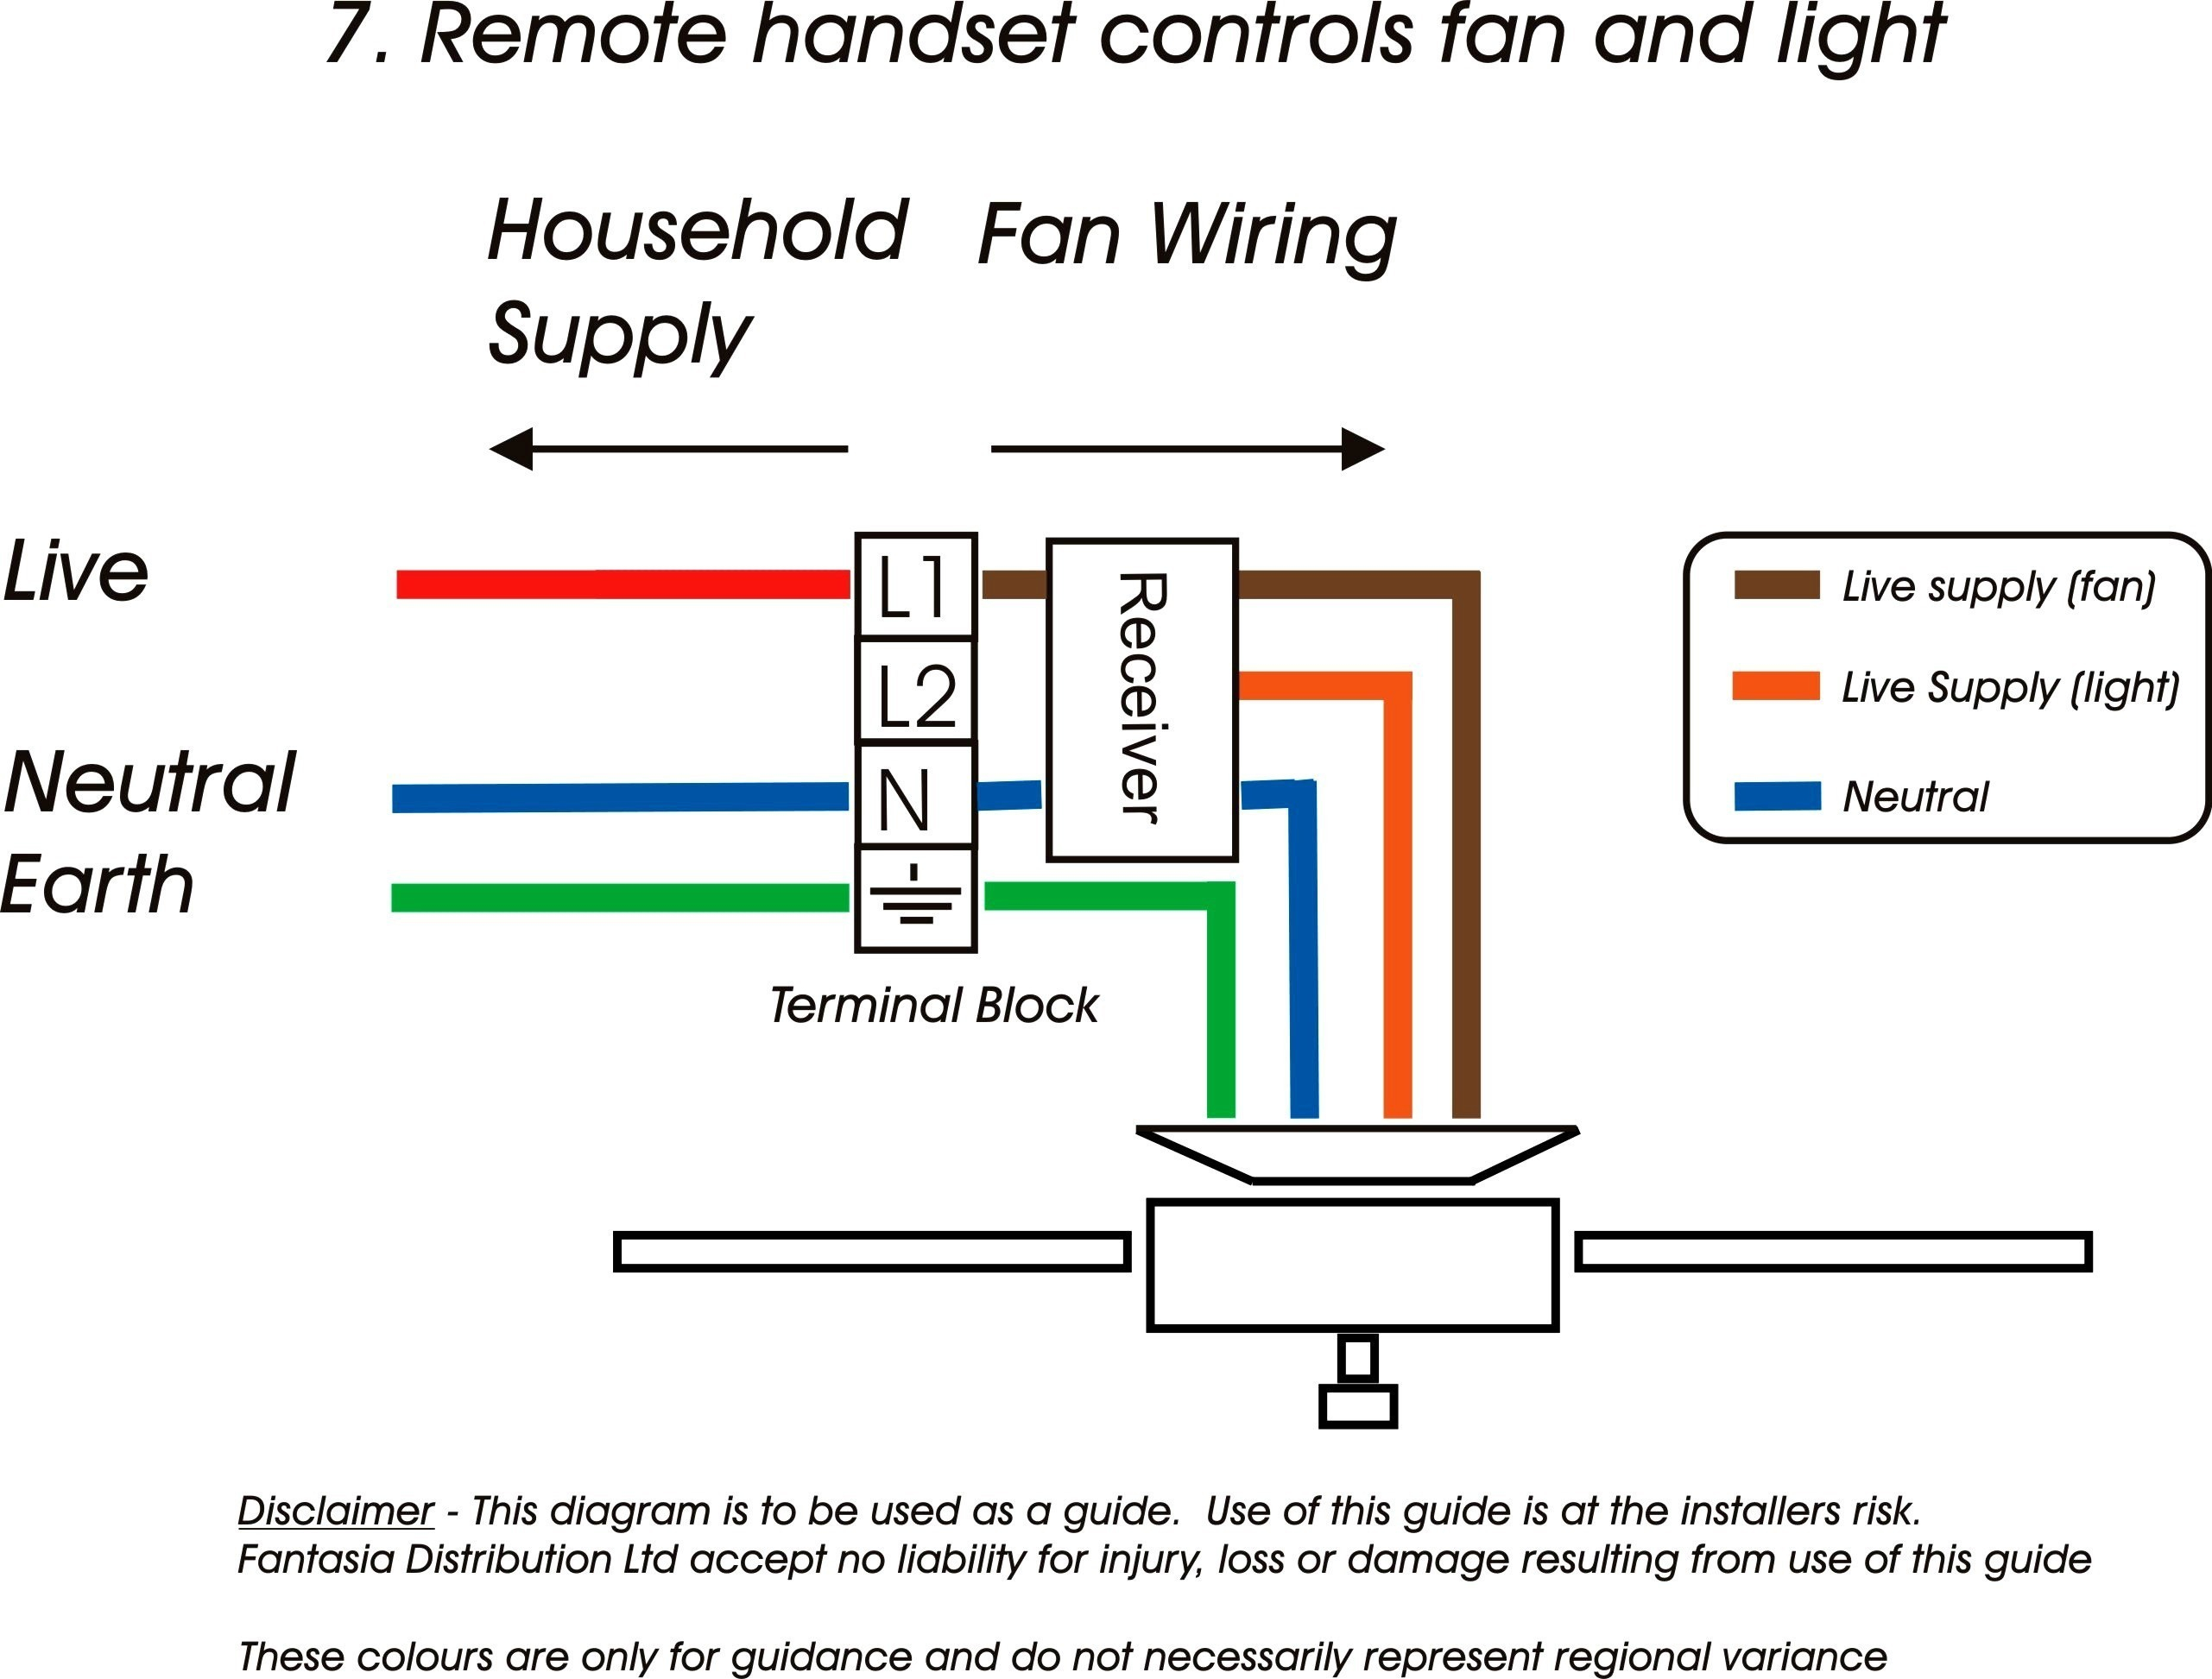 ceiling fan wiring diagram 3 speed Collection-Fan Wiring Diagram Best Unique 3 Speed Ceiling Fan Switch Wiring Diagram Diagram 20-h